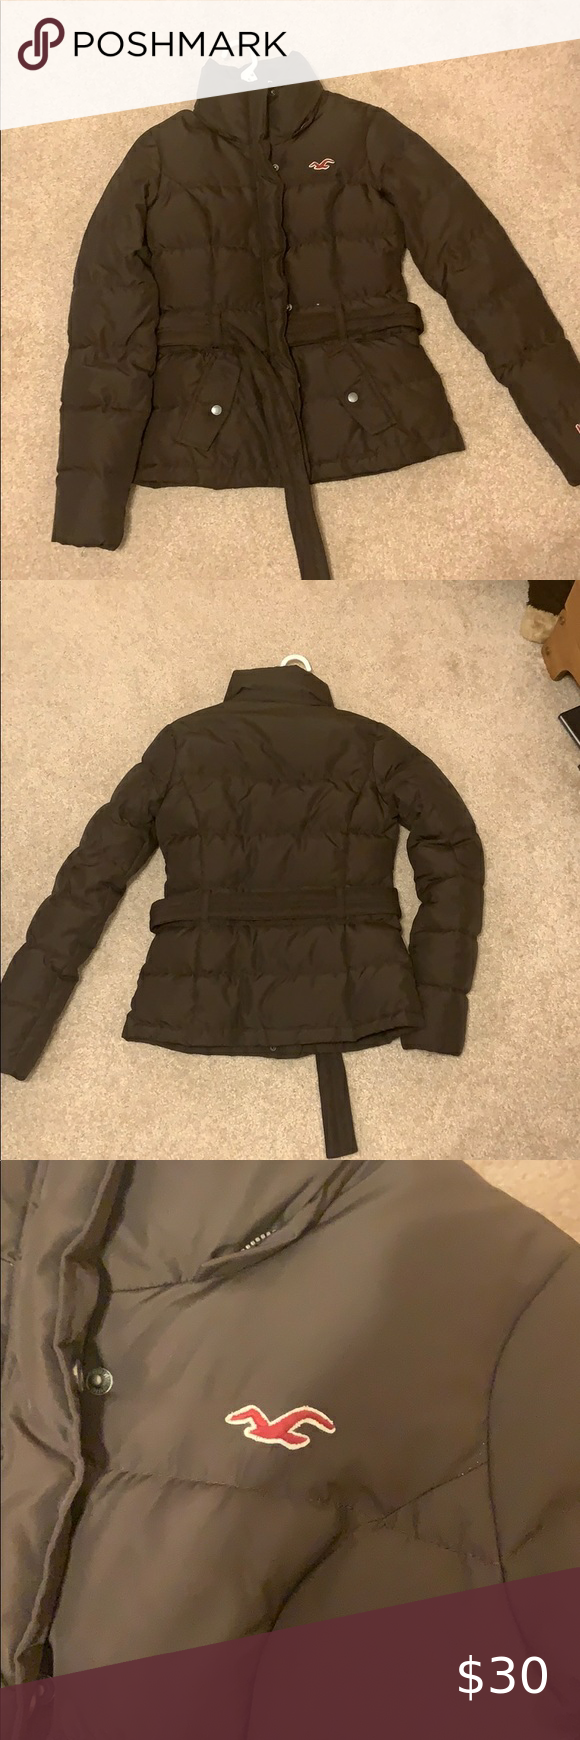 Hollister Winter Jacket Hollister Winter Jacket In Great Condition Super Cute With Belt Loops All The Way Around Holl Winter Jackets Jackets Hollister Jackets [ 1740 x 580 Pixel ]